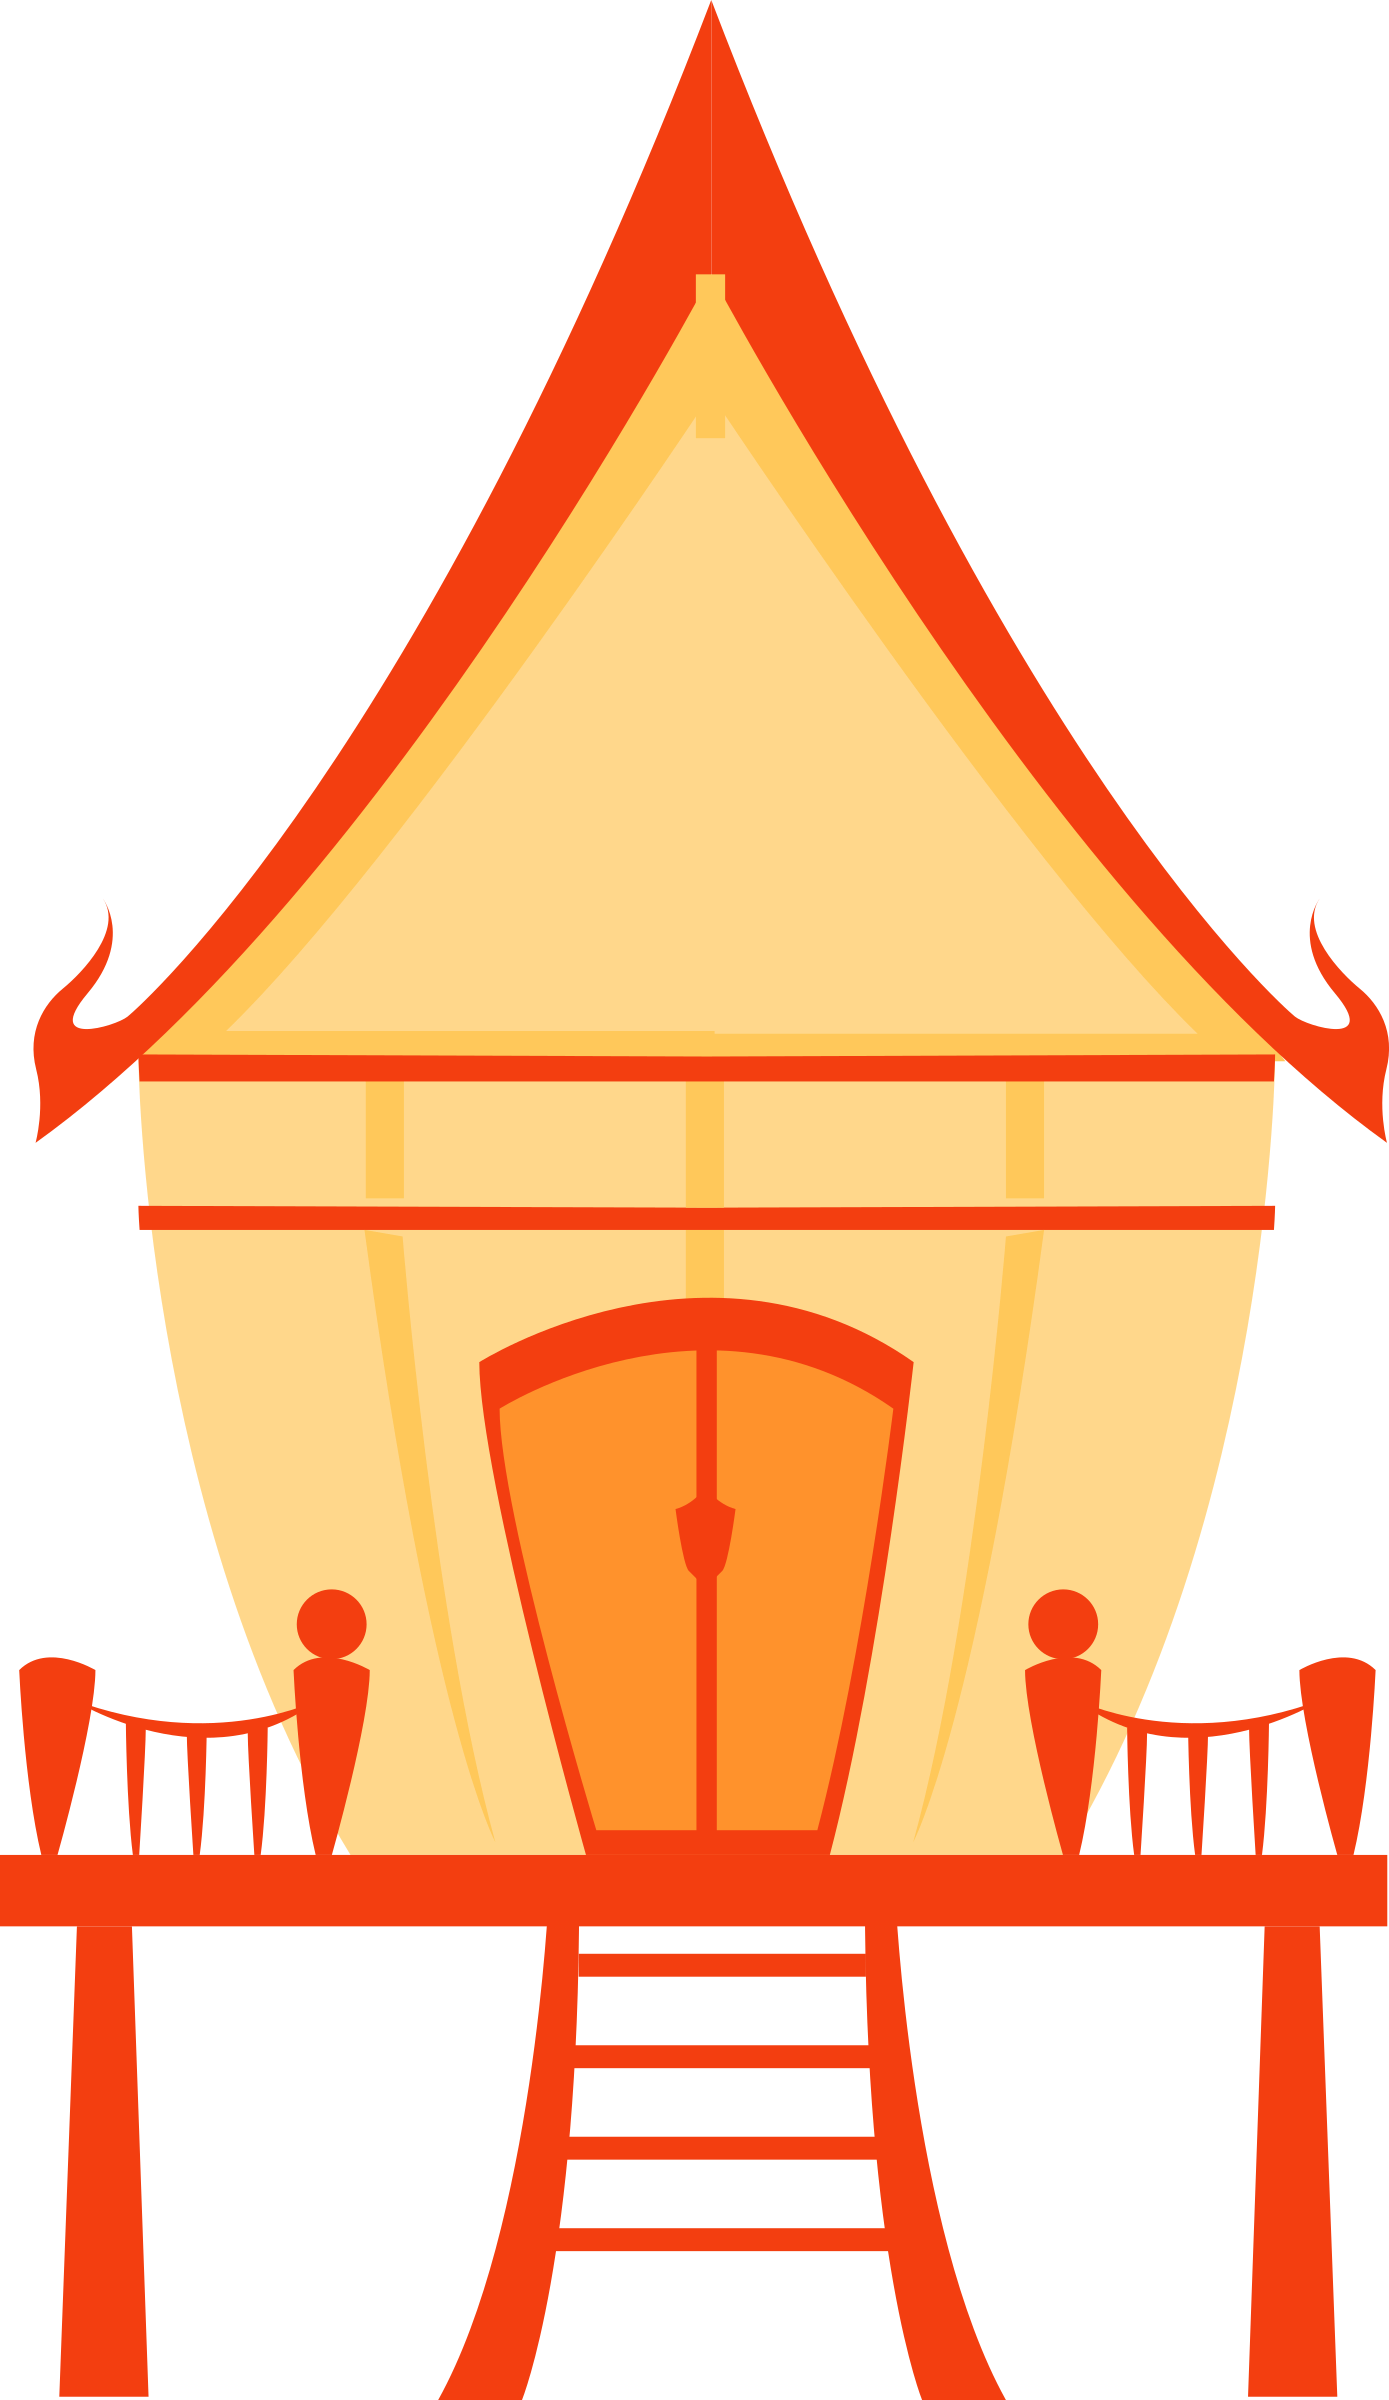 House clipart vector. Thai traditional big image